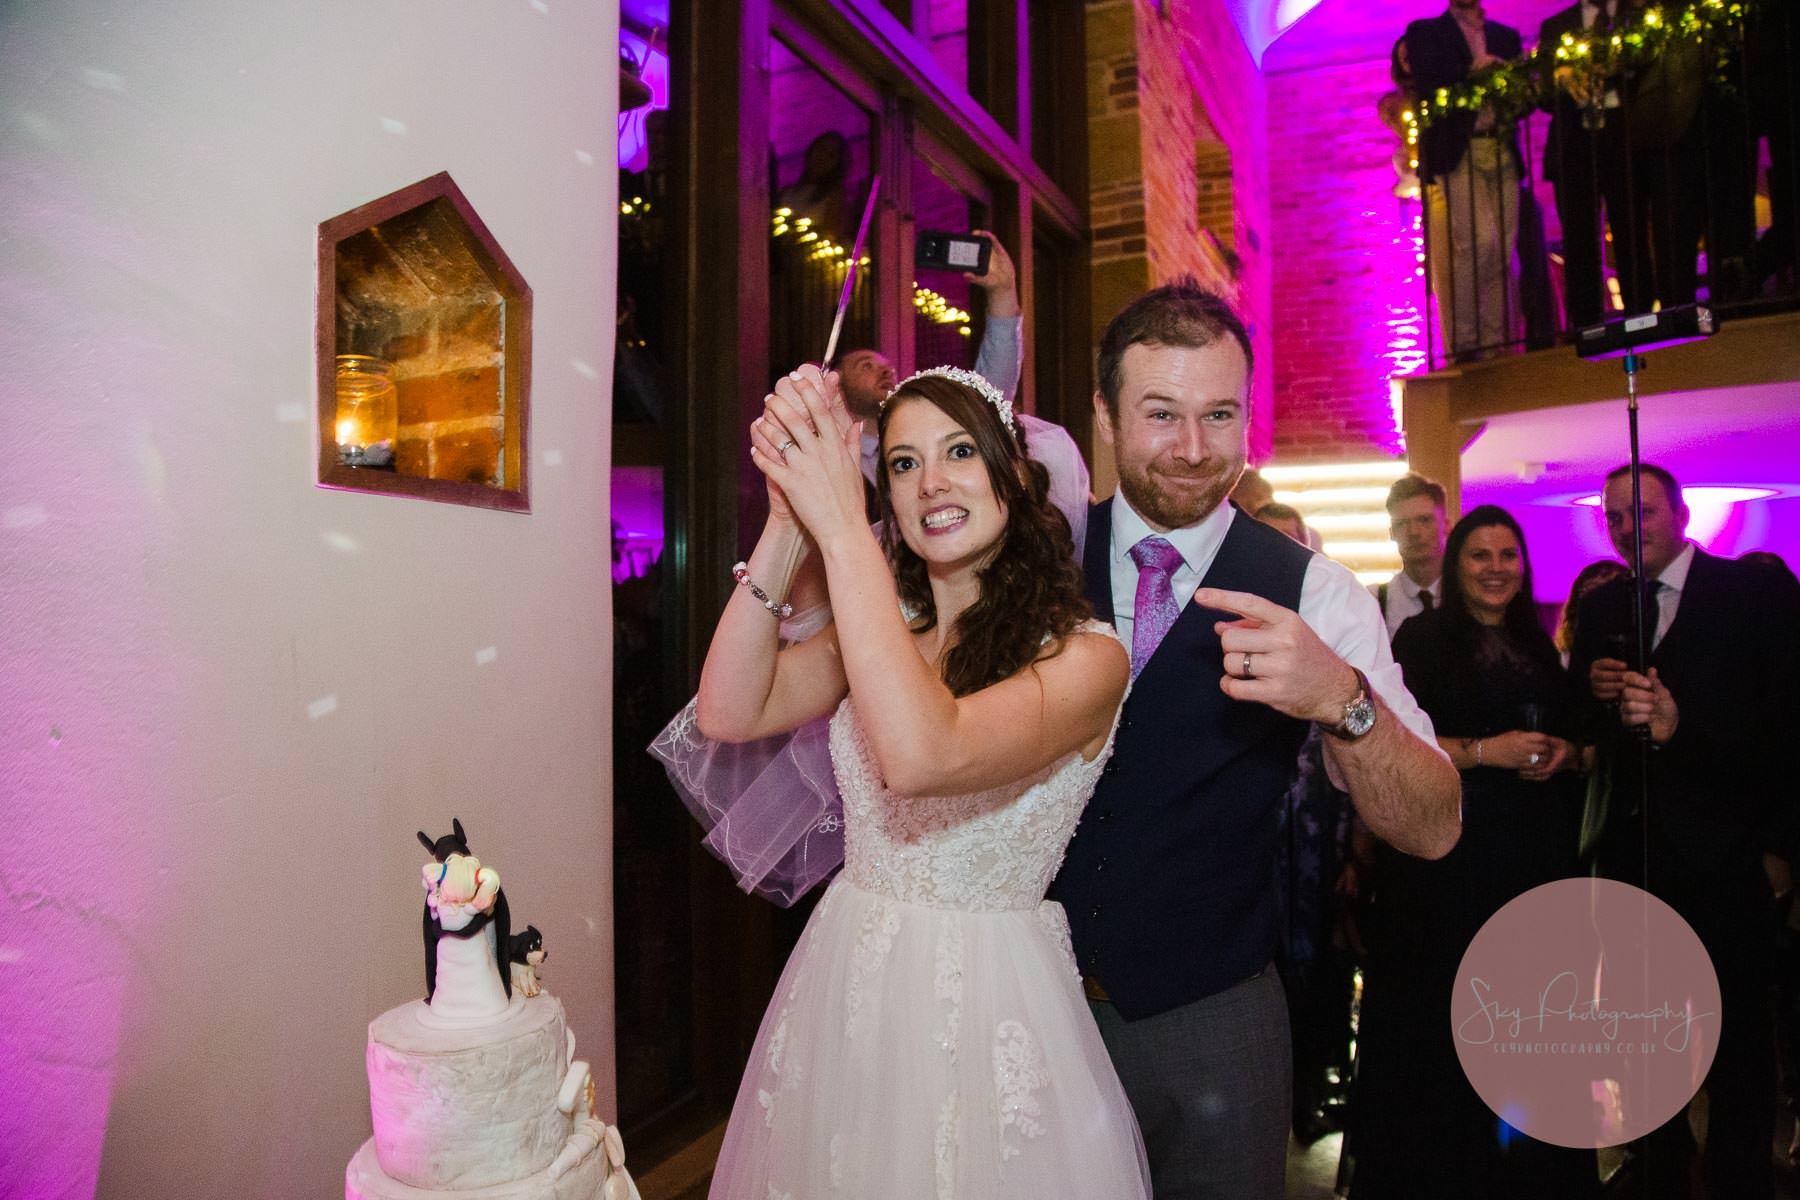 funny moment as the bride holds the knife ready to cut the cake